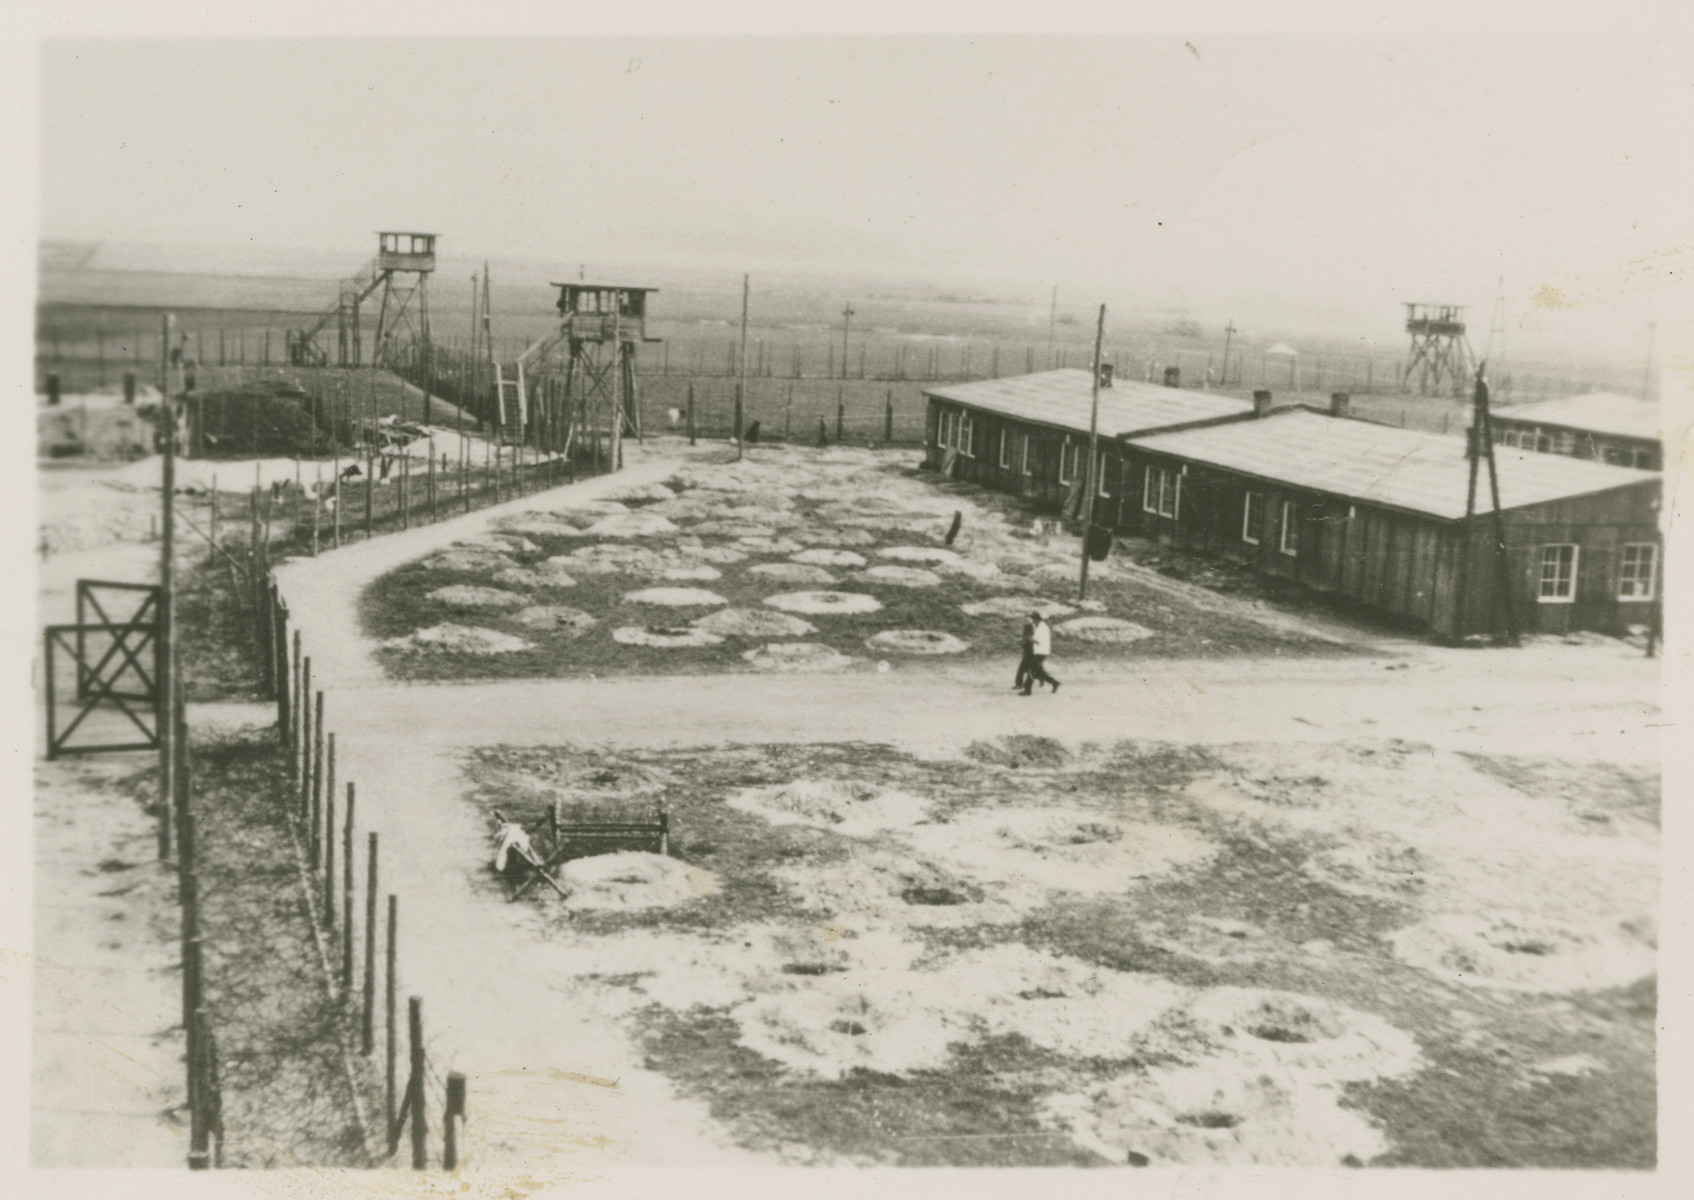 Exterior photograph of the Stalag Luft 1 fence line.